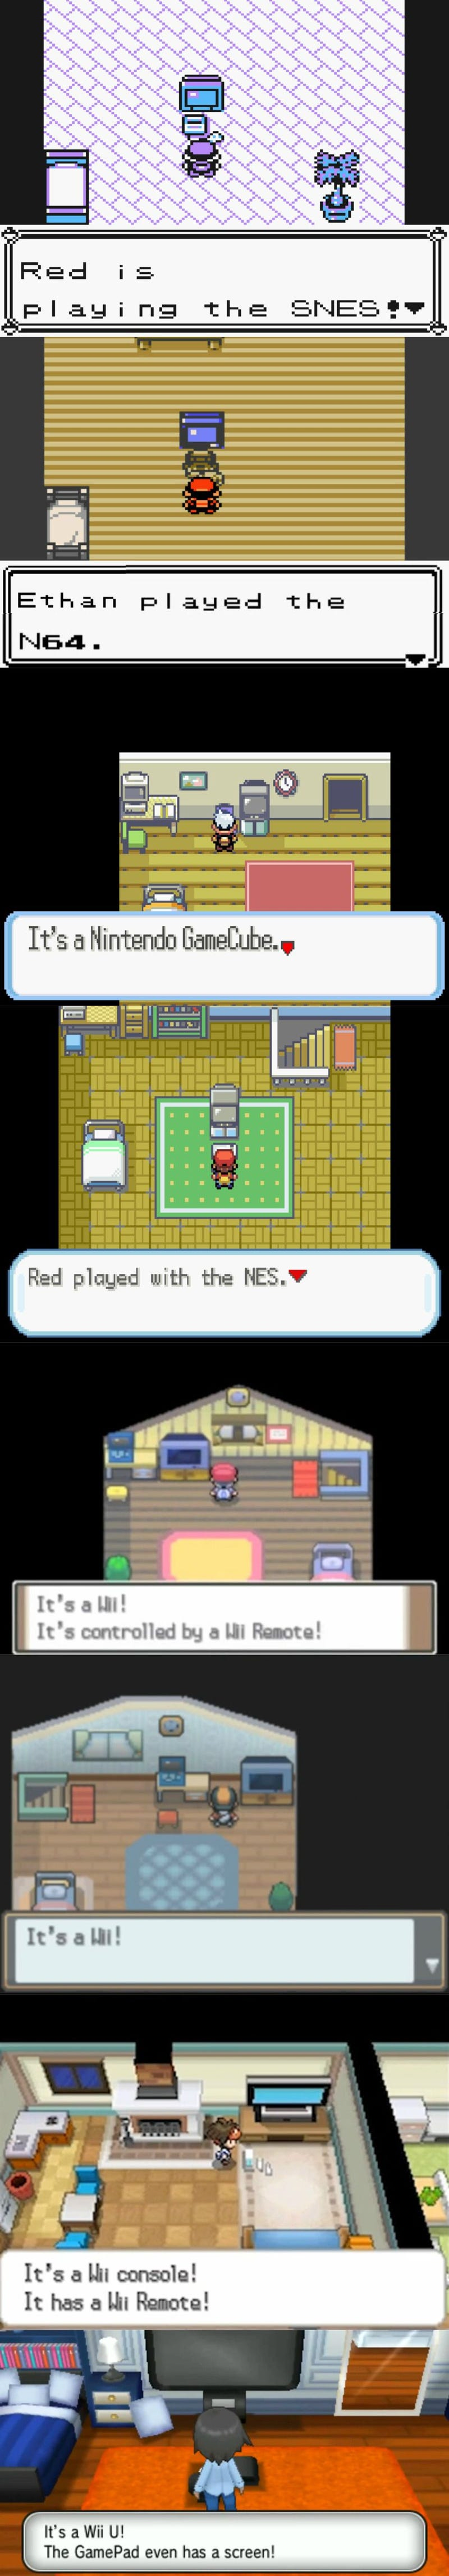 All The Nintendo Consoles In Pokémon Games Over The Years